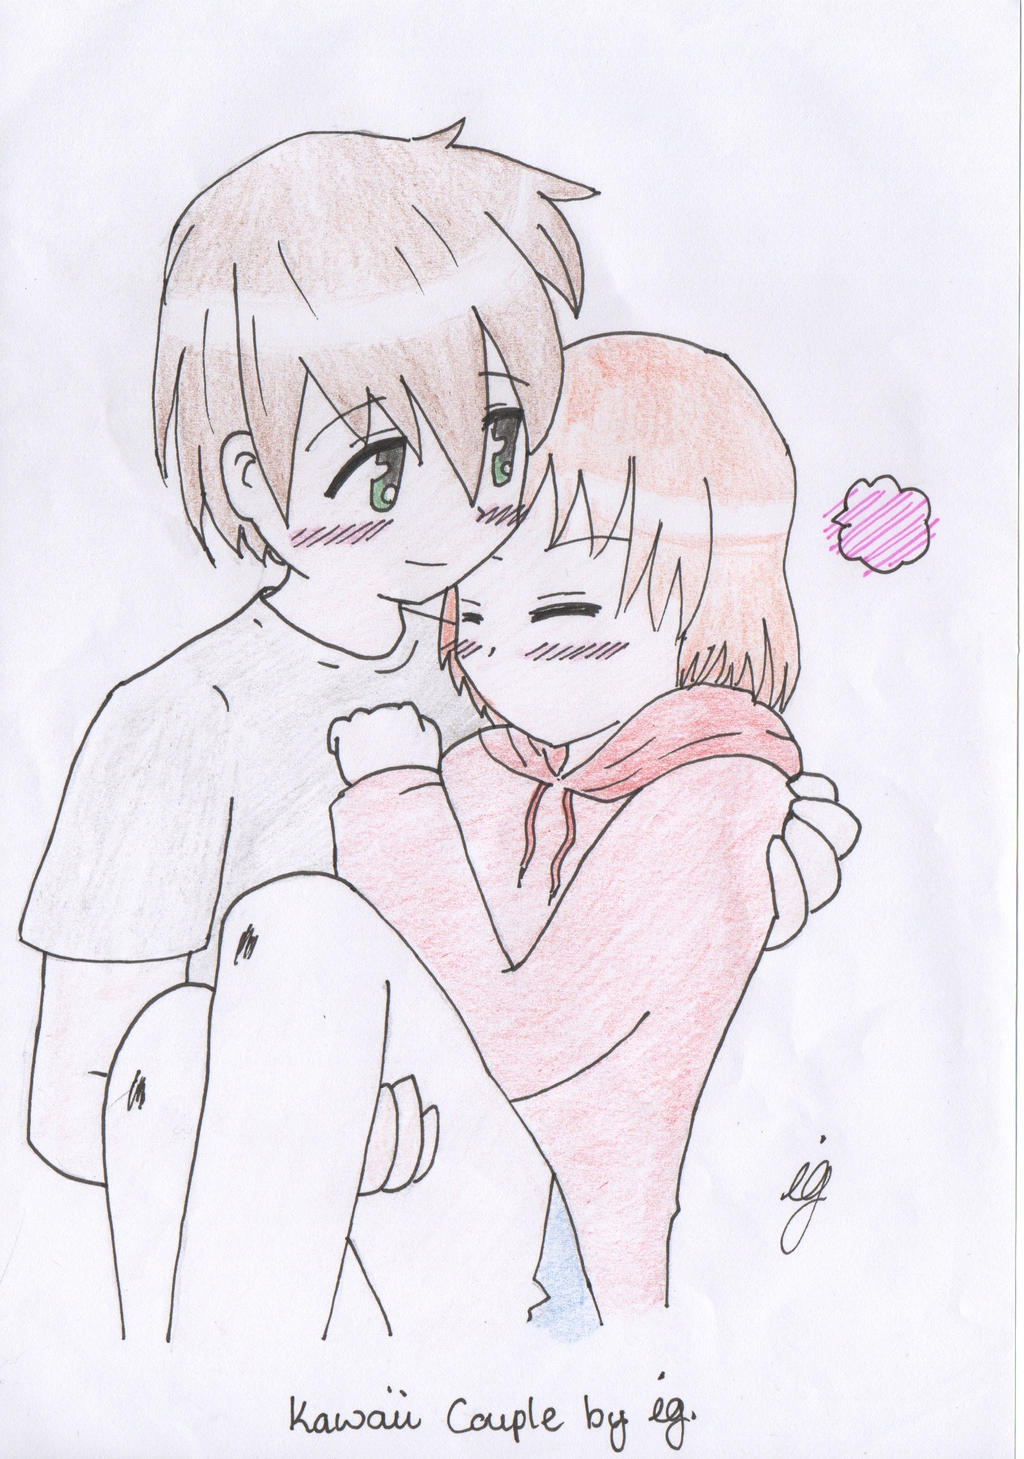 Cute Anime Couple By Umineko93 On DeviantArt